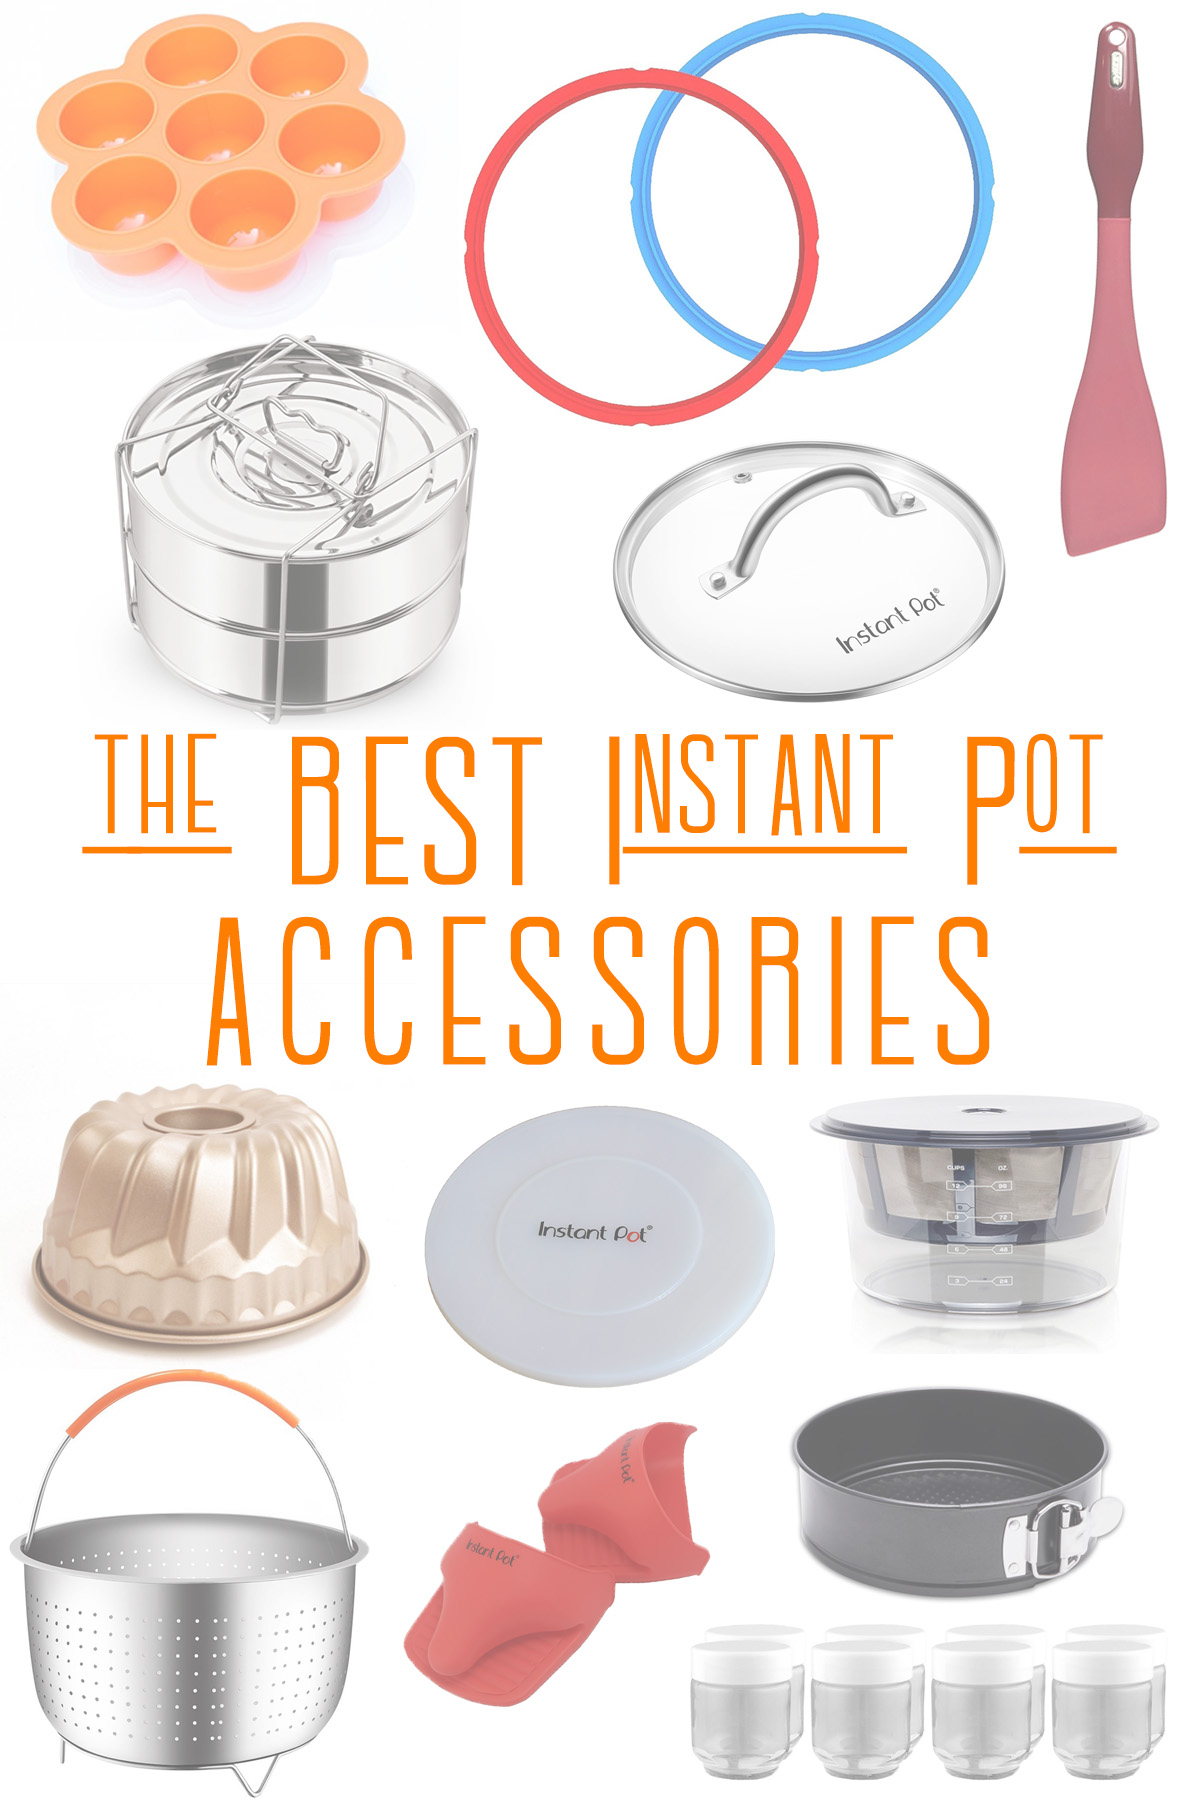 The Best Instant Pot Accessories